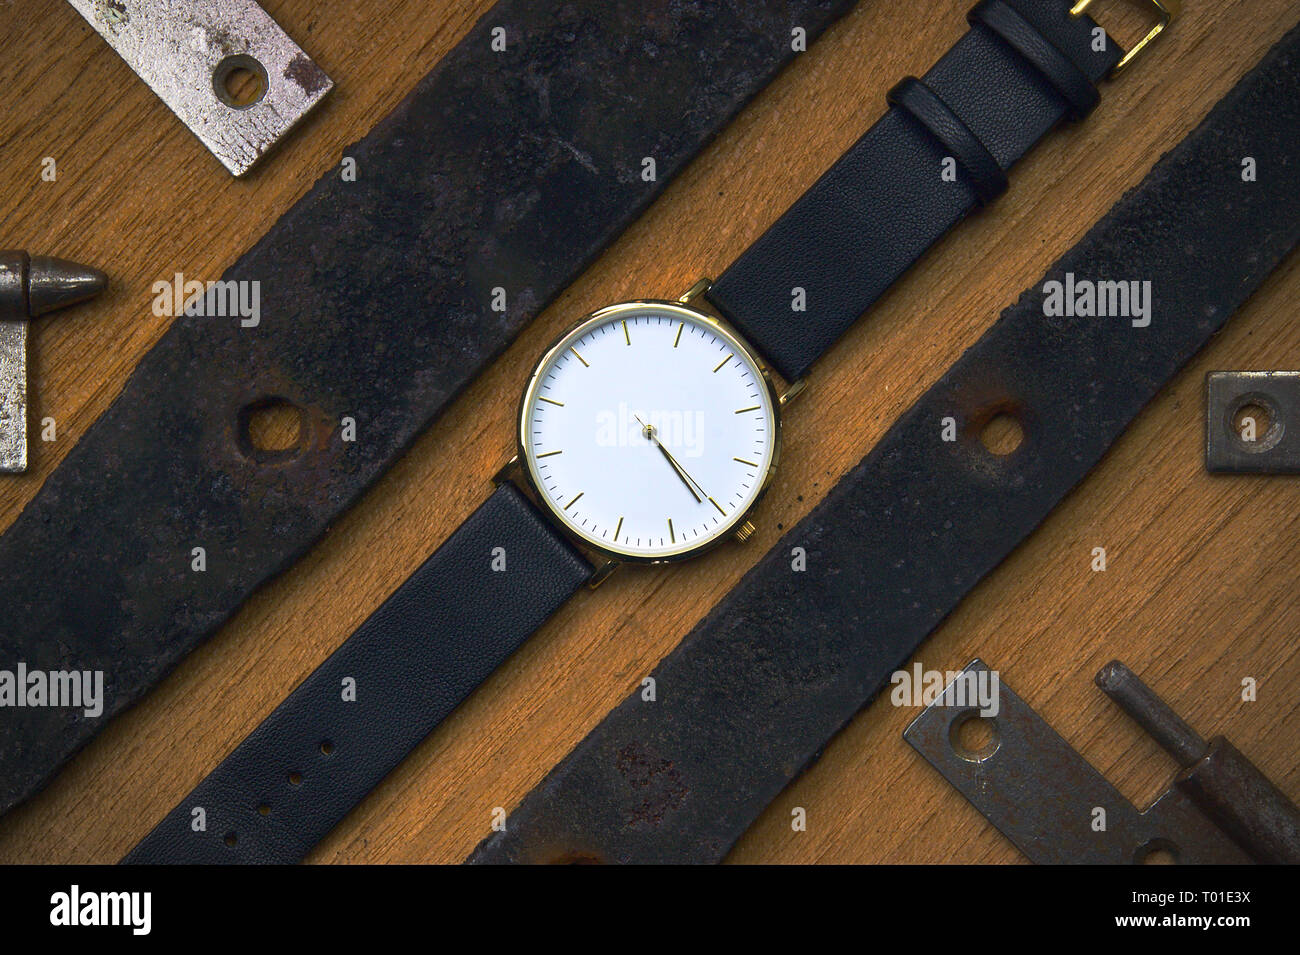 Wristwatch on wooden table from up top. - Stock Image